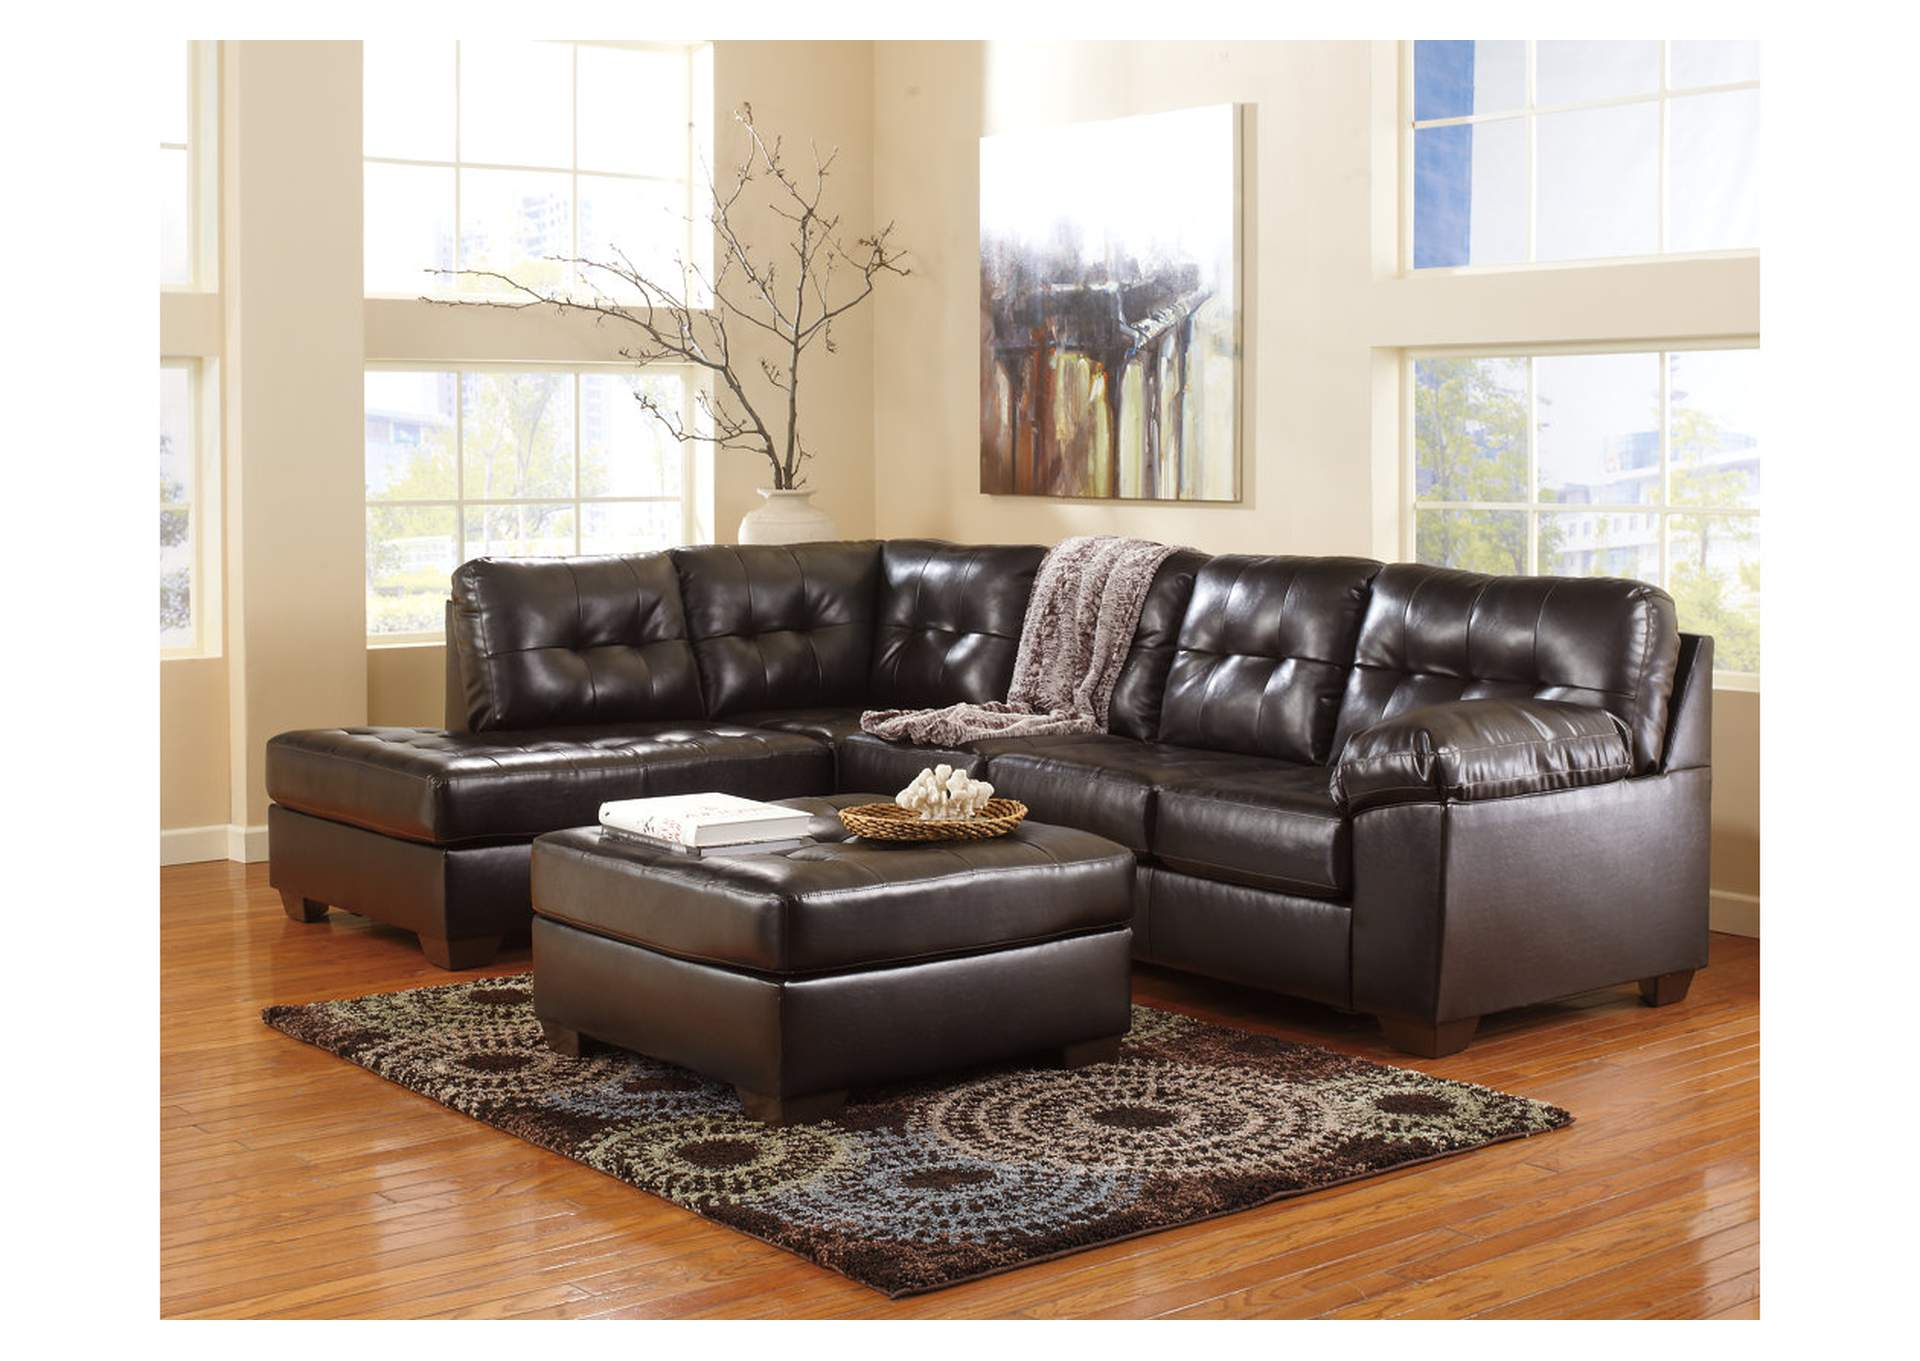 Alliston DuraBlend Chocolate LAF Chaise End Sectional & Oversized Accent Ottoman,Signature Design By Ashley